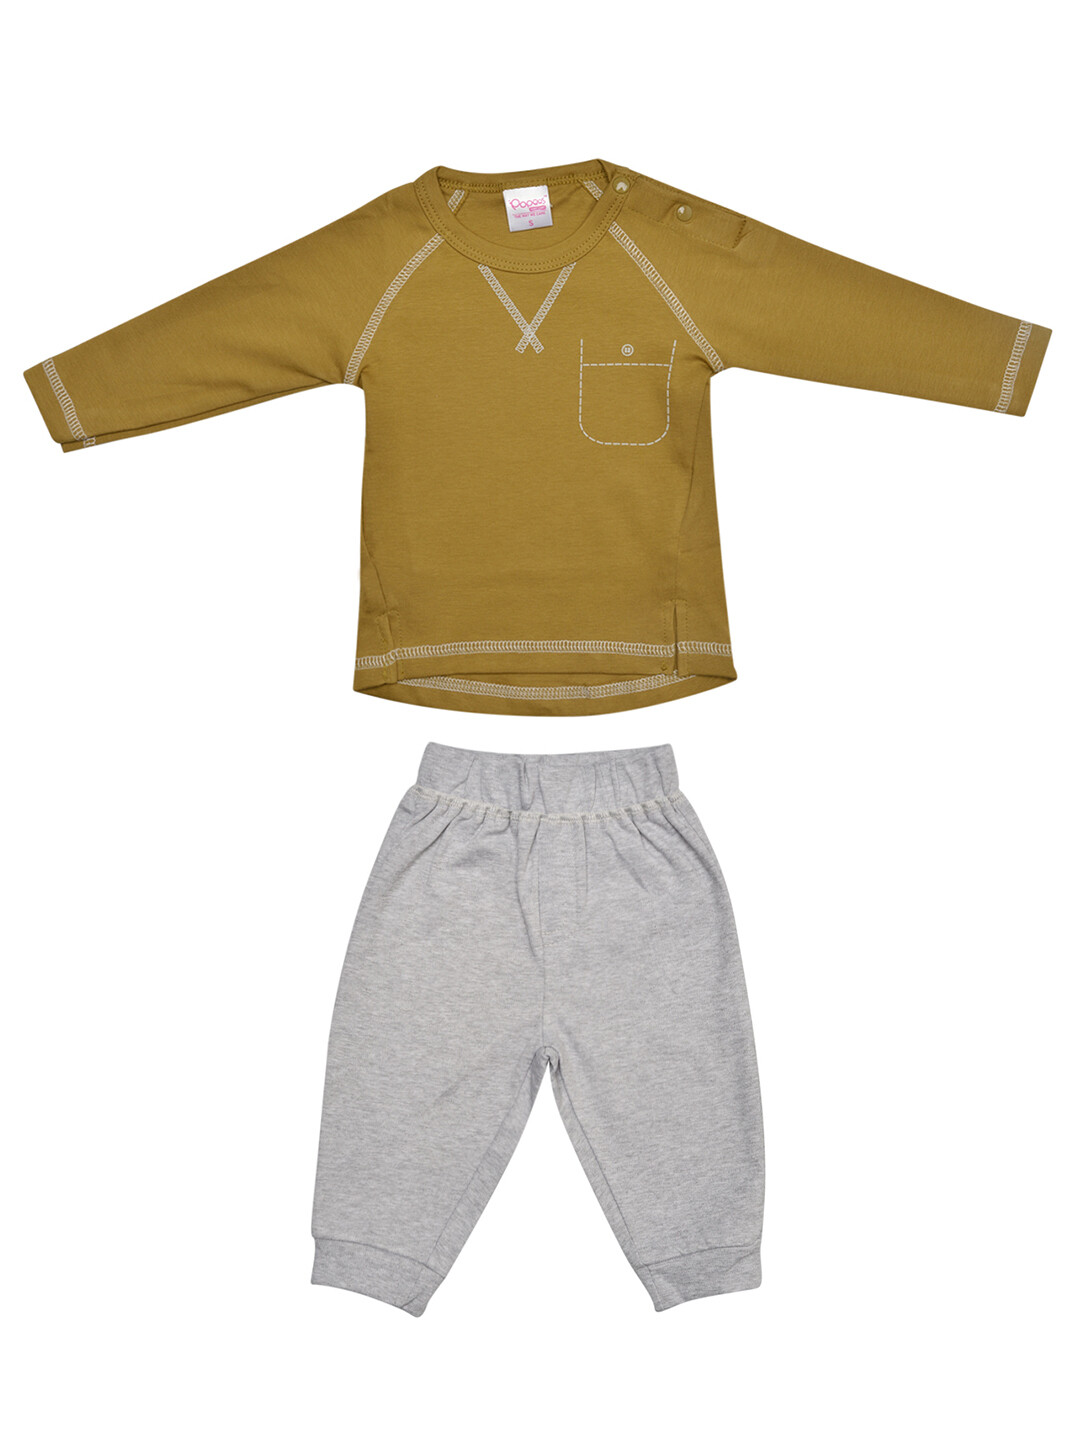 Fives Dull Gold Full Sleeves Round Neck T-shirt with Lounge pant